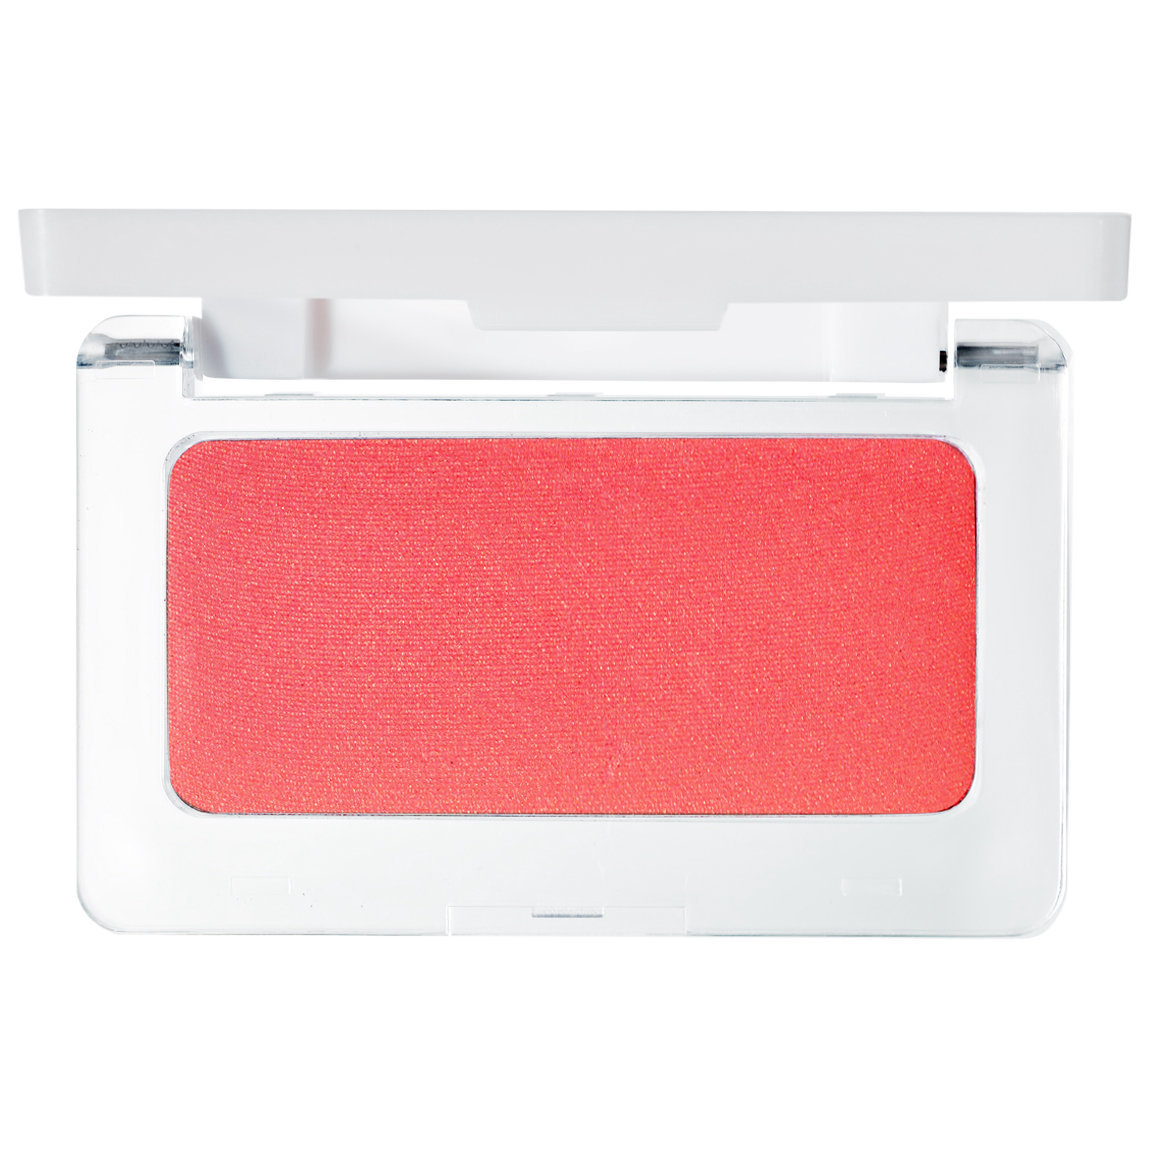 rms beauty Pressed Blush Crushed Rose alternative view 1 - product swatch.